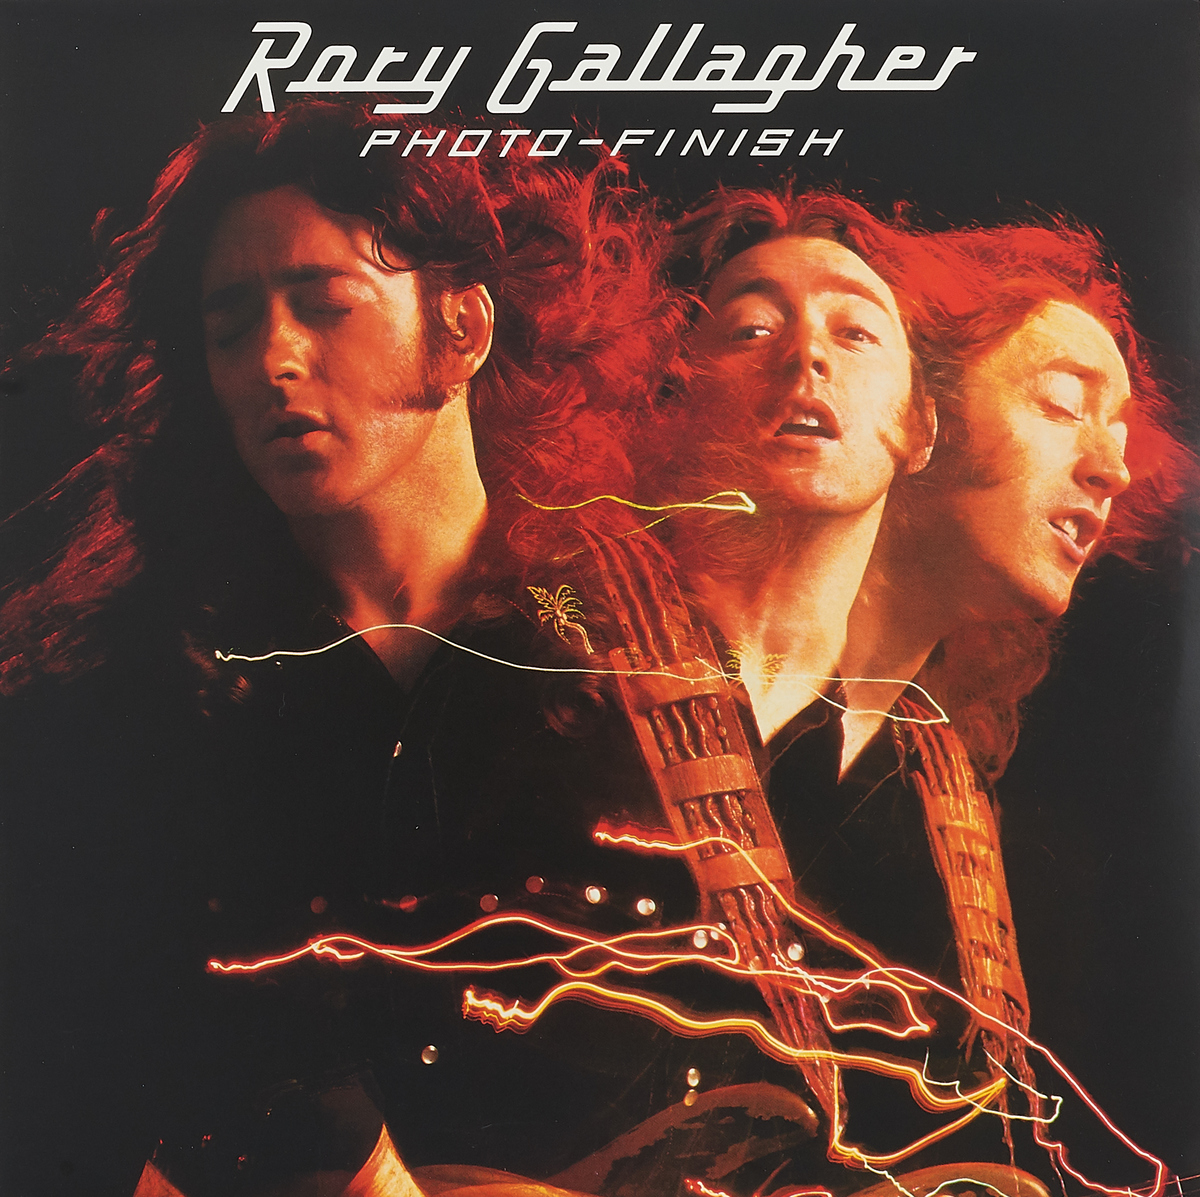 Рори Галлахер Rory Gallagher. Photo Finish (LP) рори галлахер gallagher rory live in europe hq lp